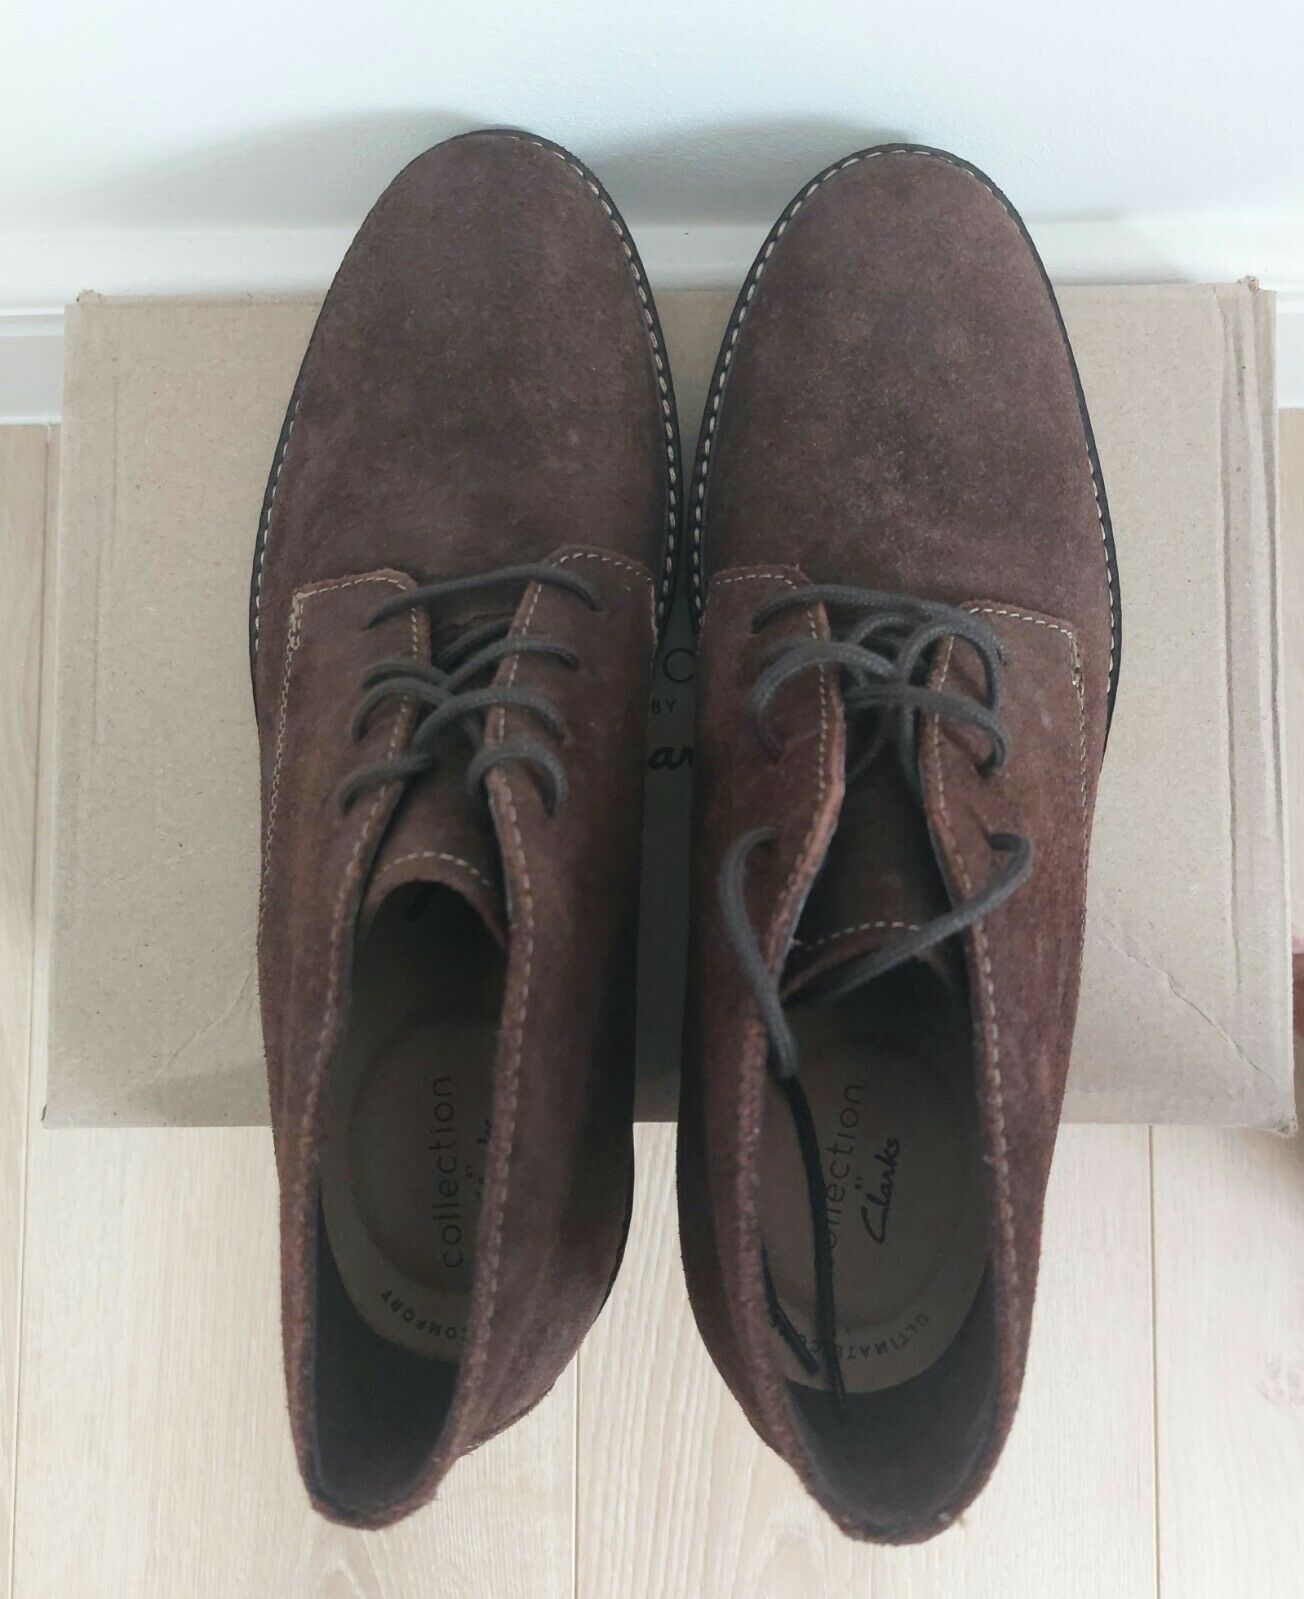 Clarks Mens Suede Chukka Boots PAULSON MID Dark Brown Size 8 UK US 9 EUR 42